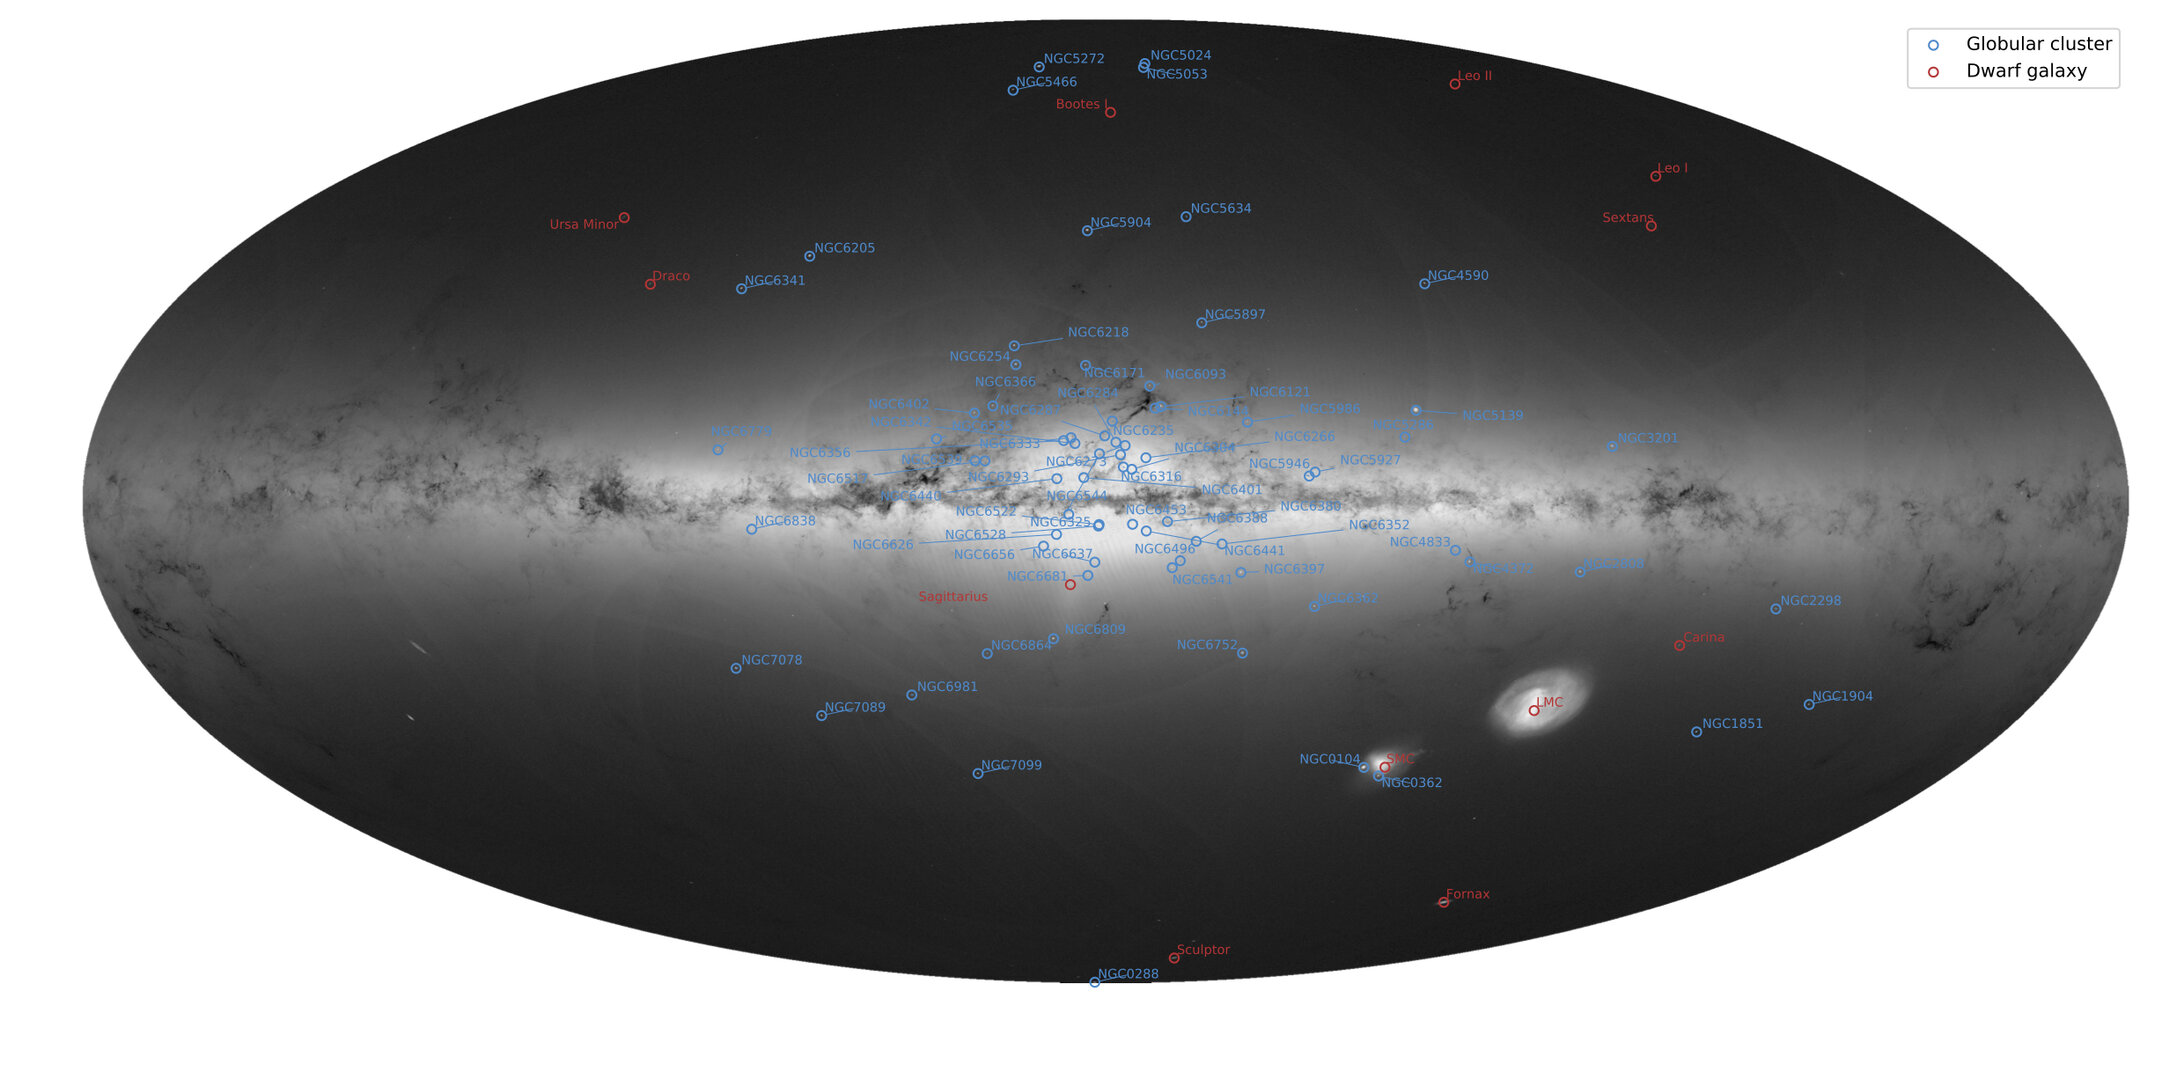 Gaia's globular clusters and dwarf galaxies